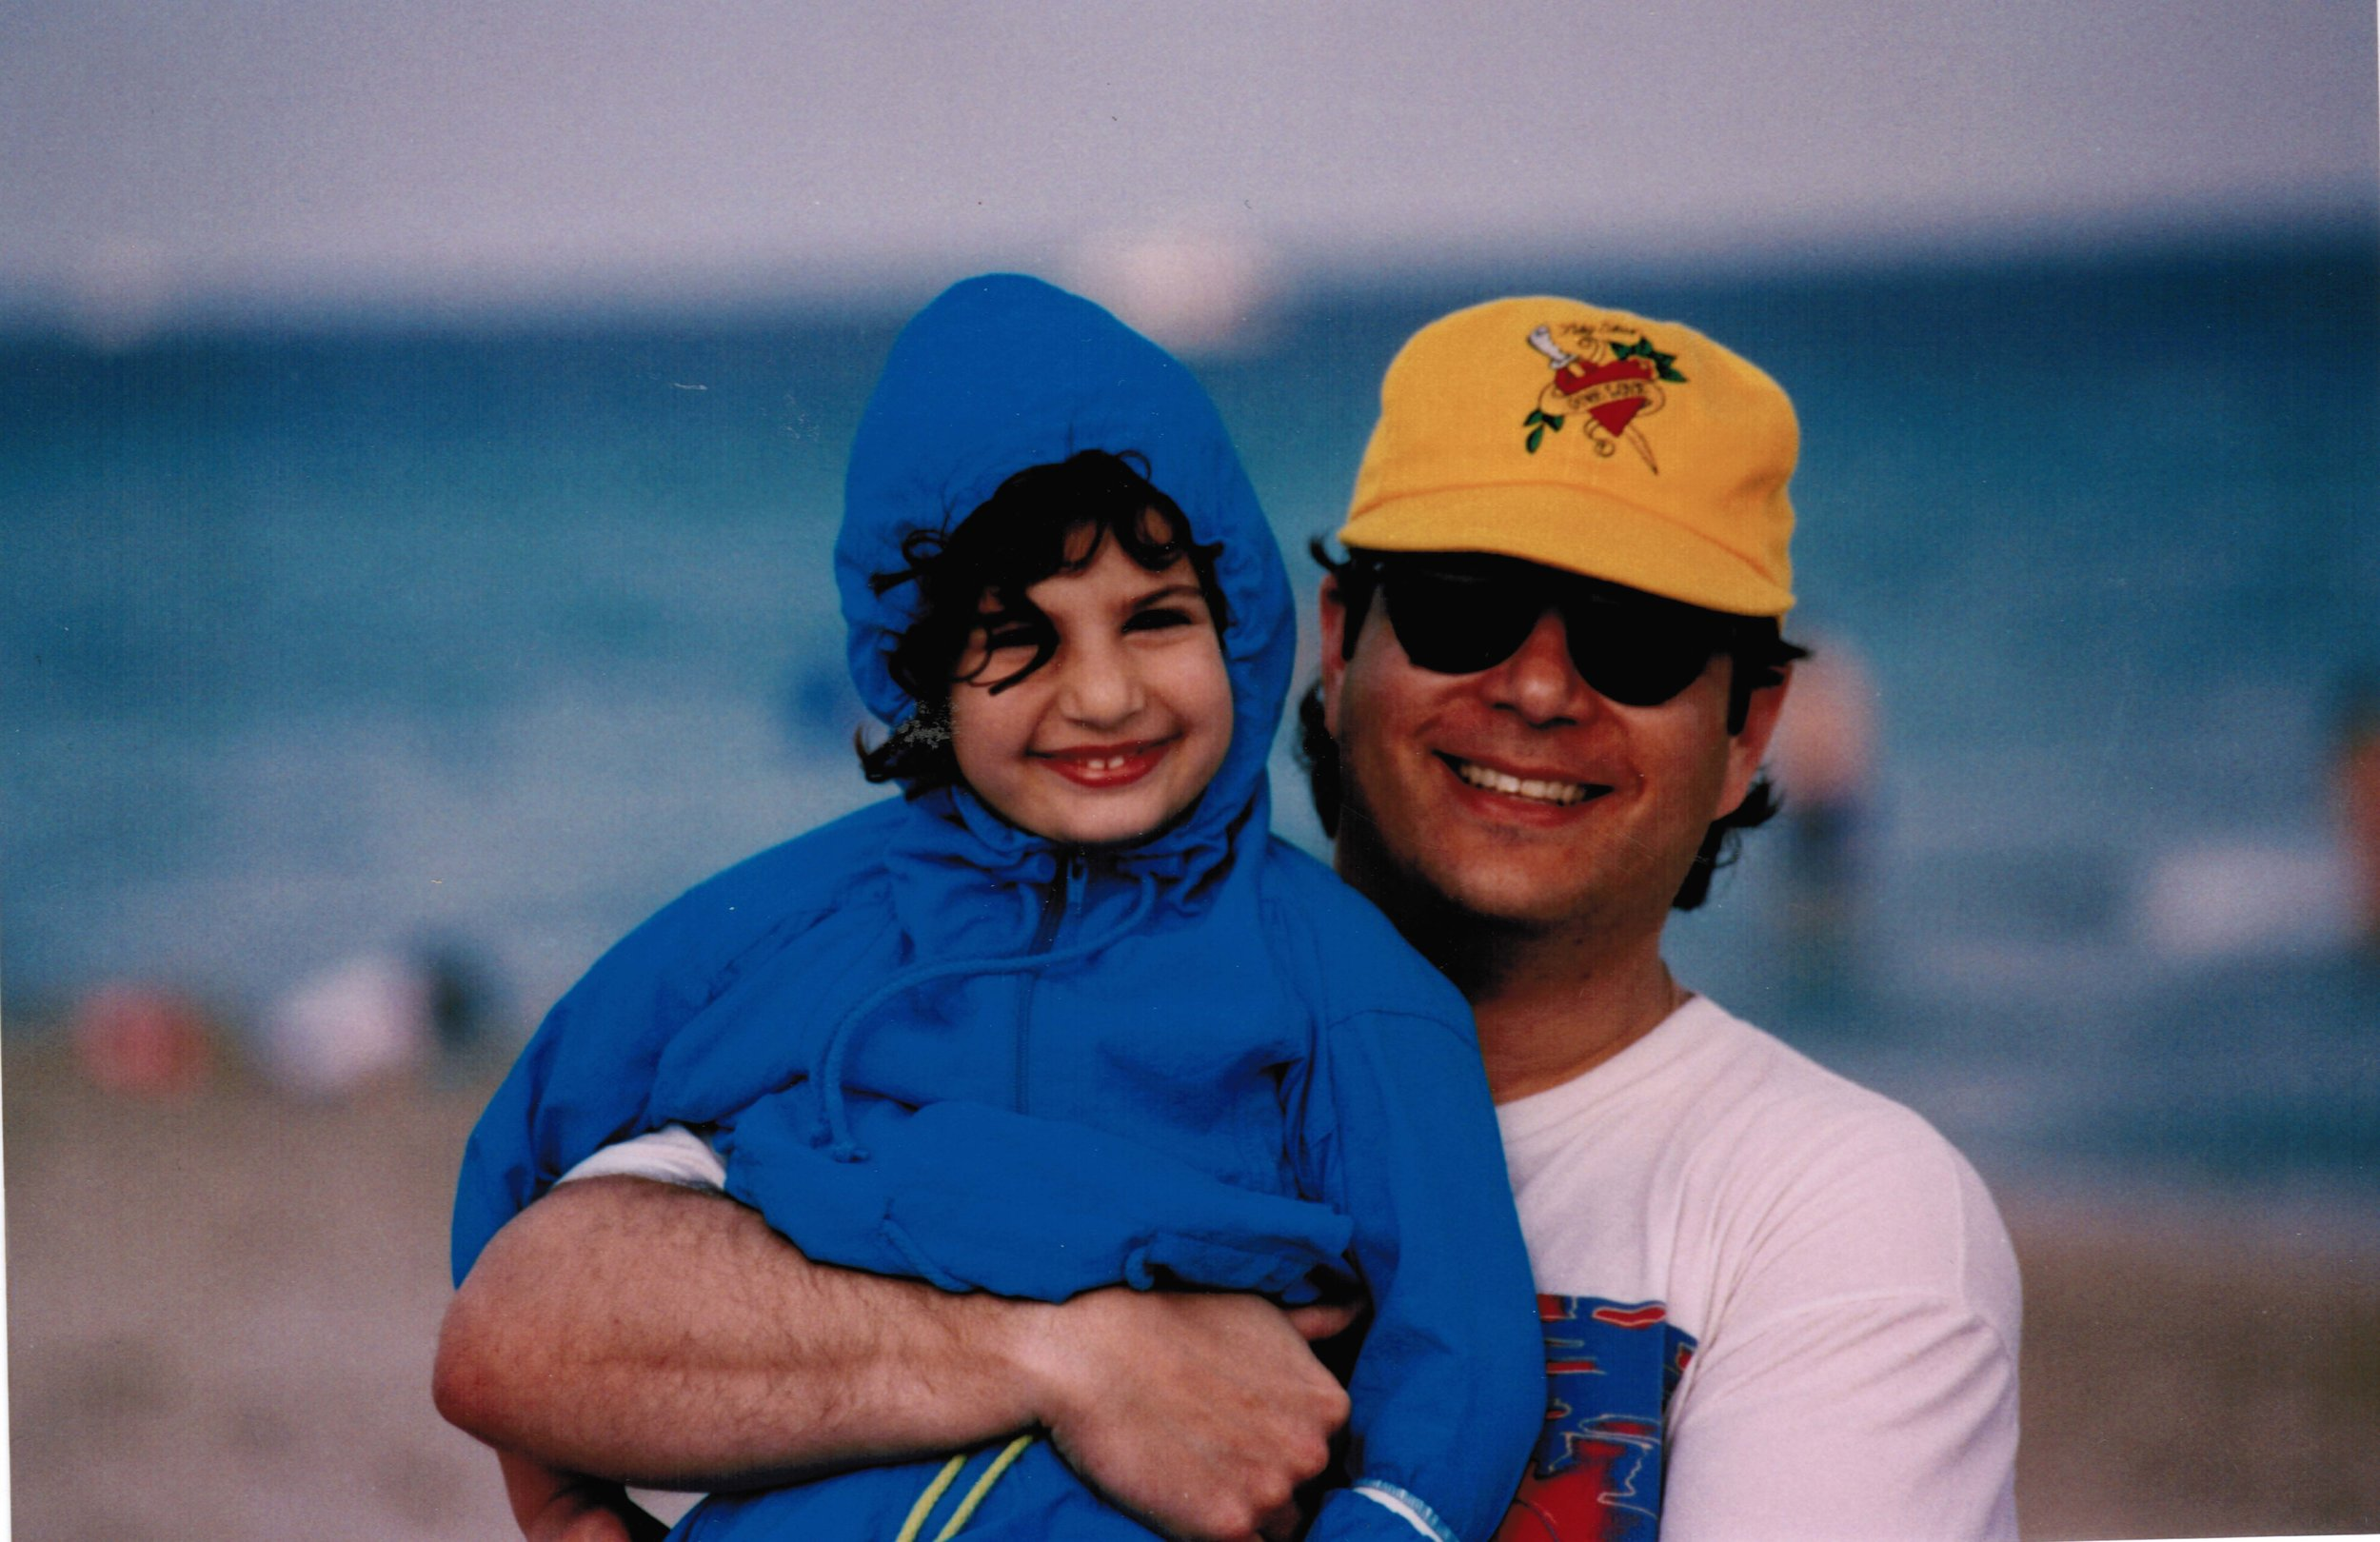 dad and me pic.jpg